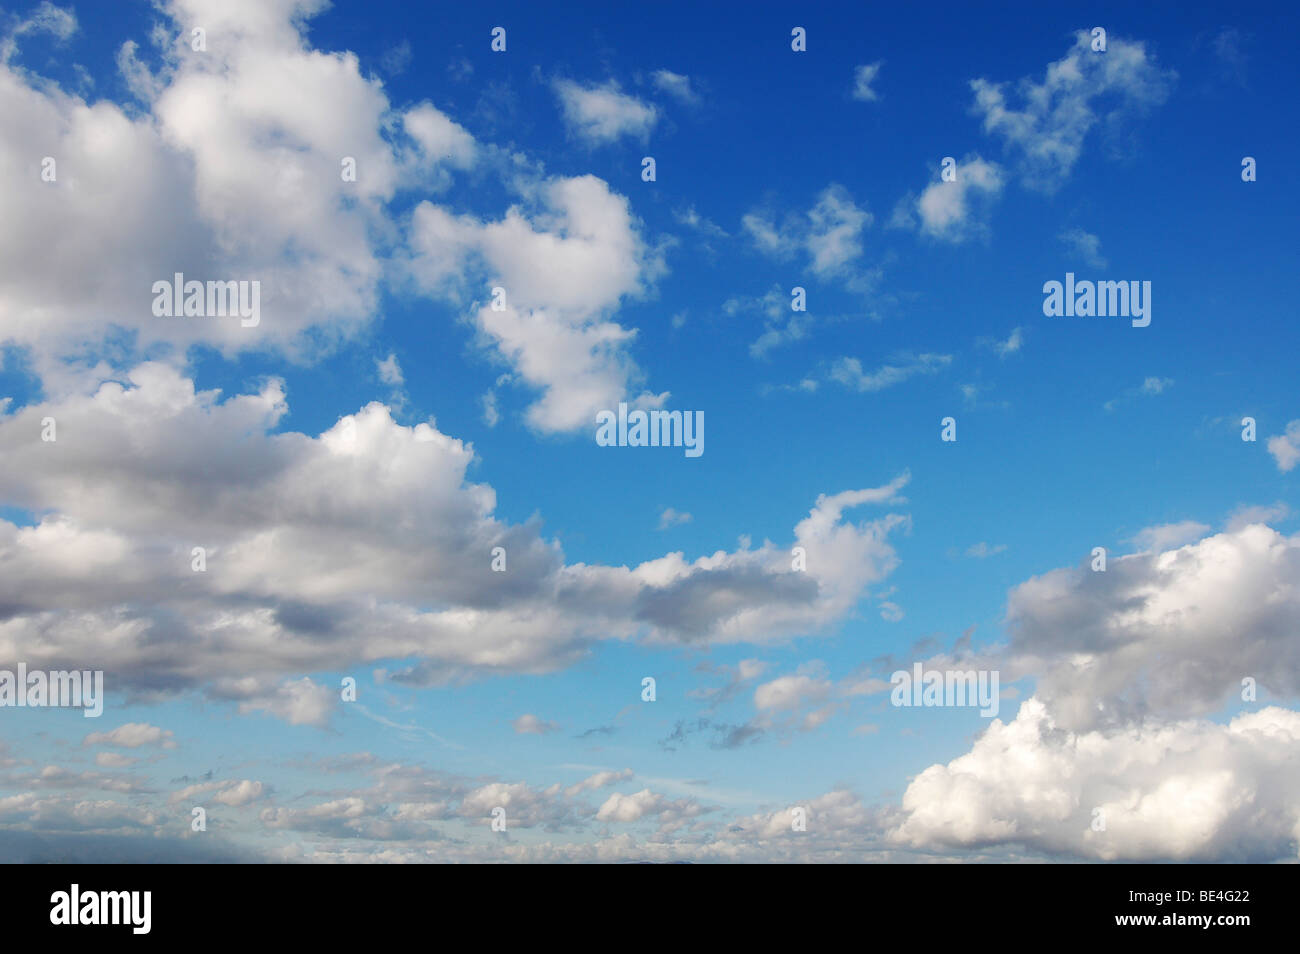 Blue sky with fluffy clouds in sunshine day - Stock Image